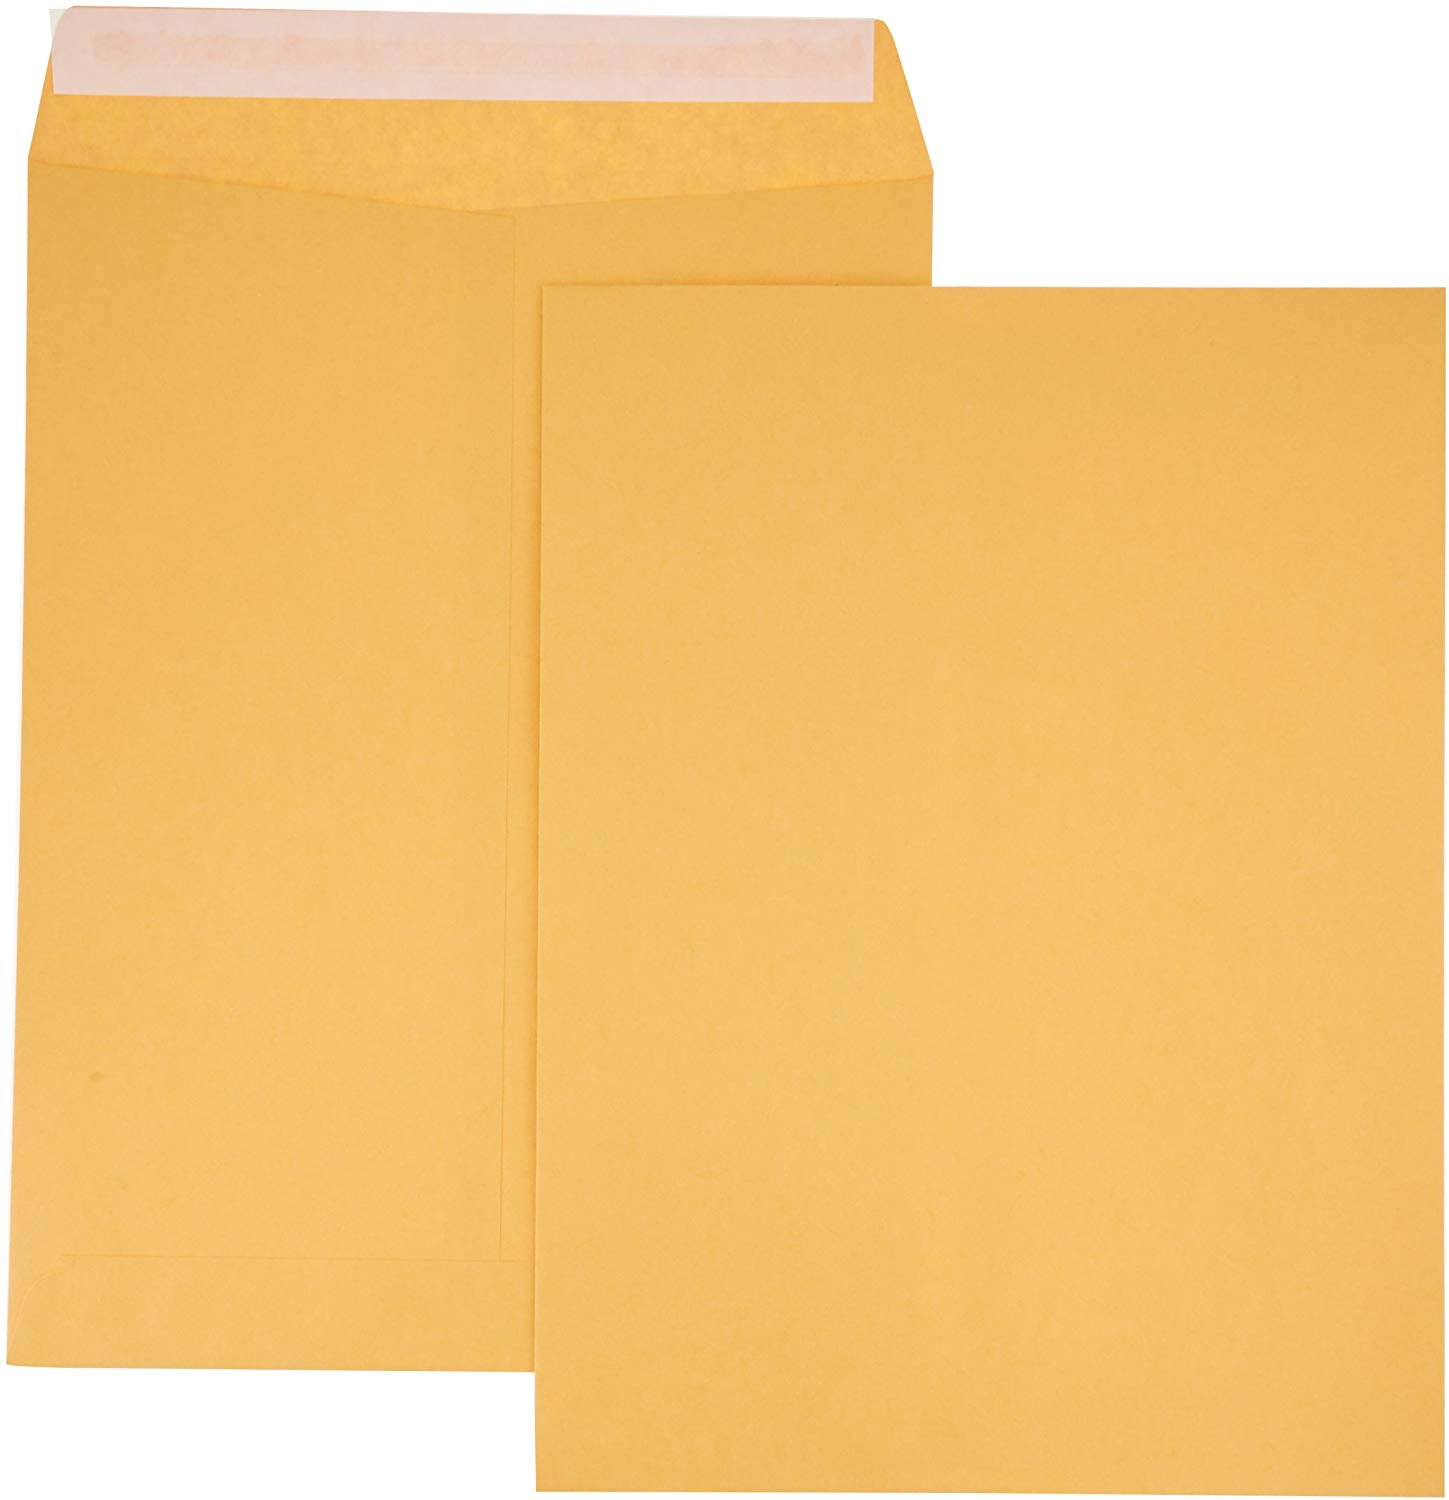 Manilla envelope 8.5x11 showing front and back with sticky flap